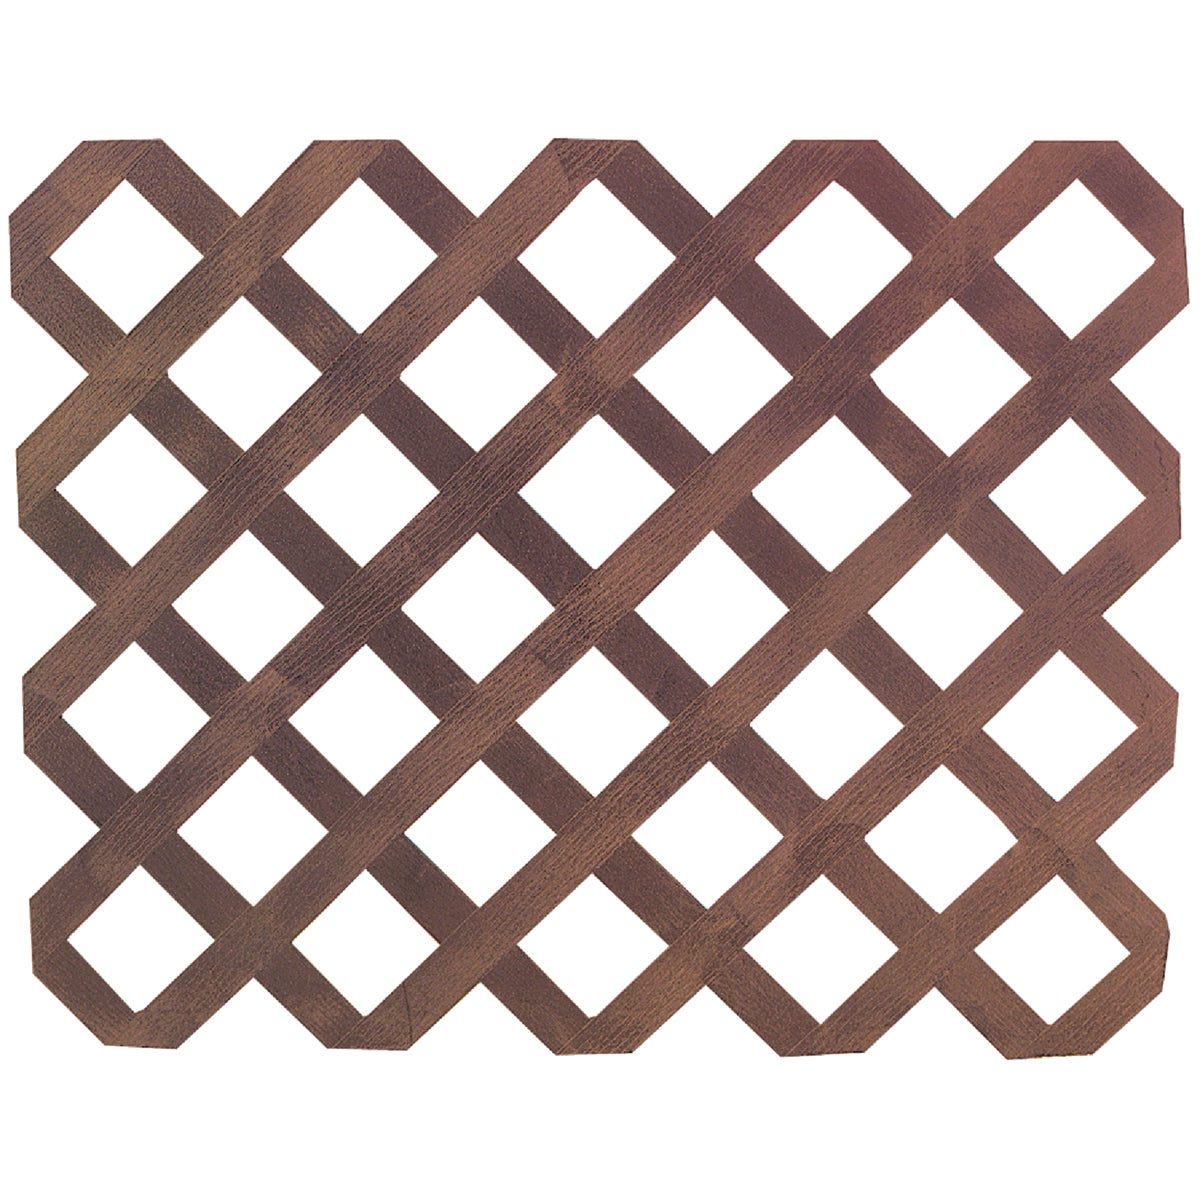 "2-5/8""SP HD CDR LATTICE - 4X8X3/4 by Real Wood Products"